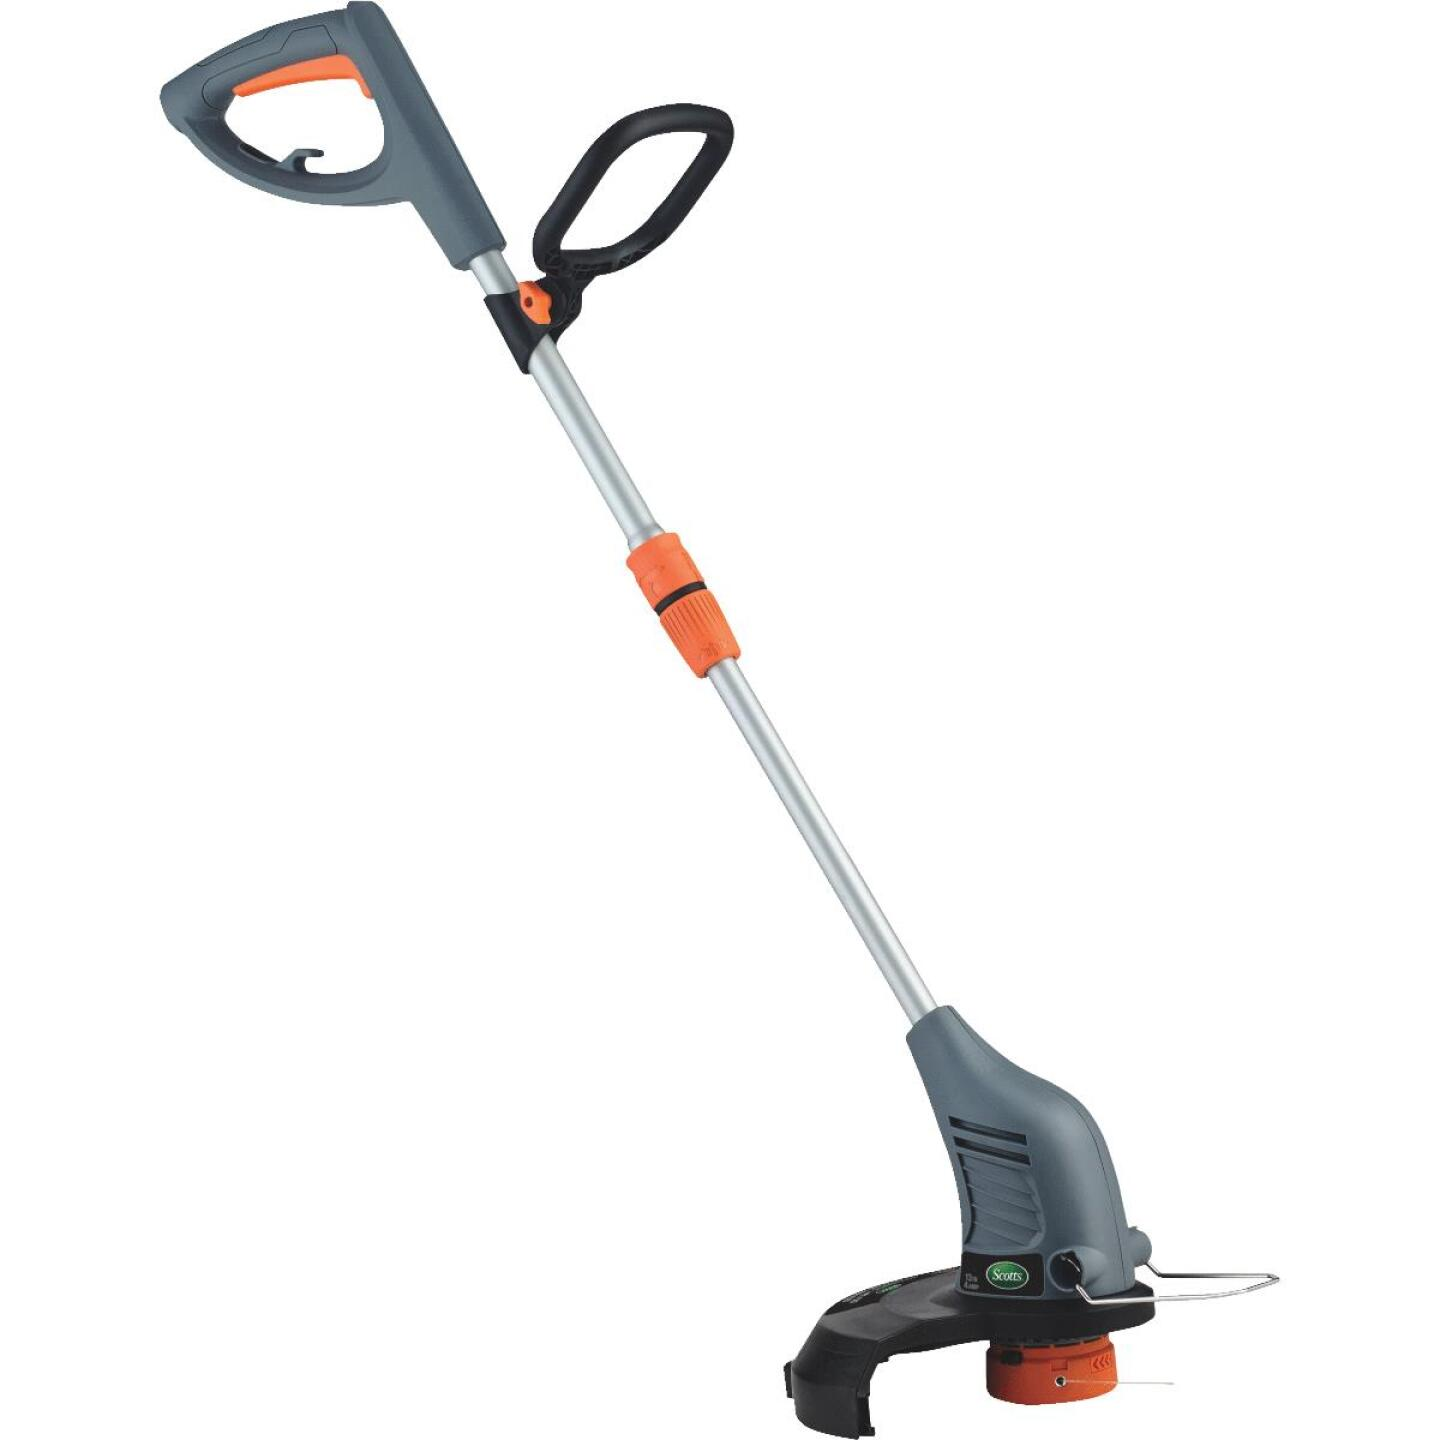 Scotts 13 In. 4 Amp Straight Shaft Corded Electric String Trimmer Image 1